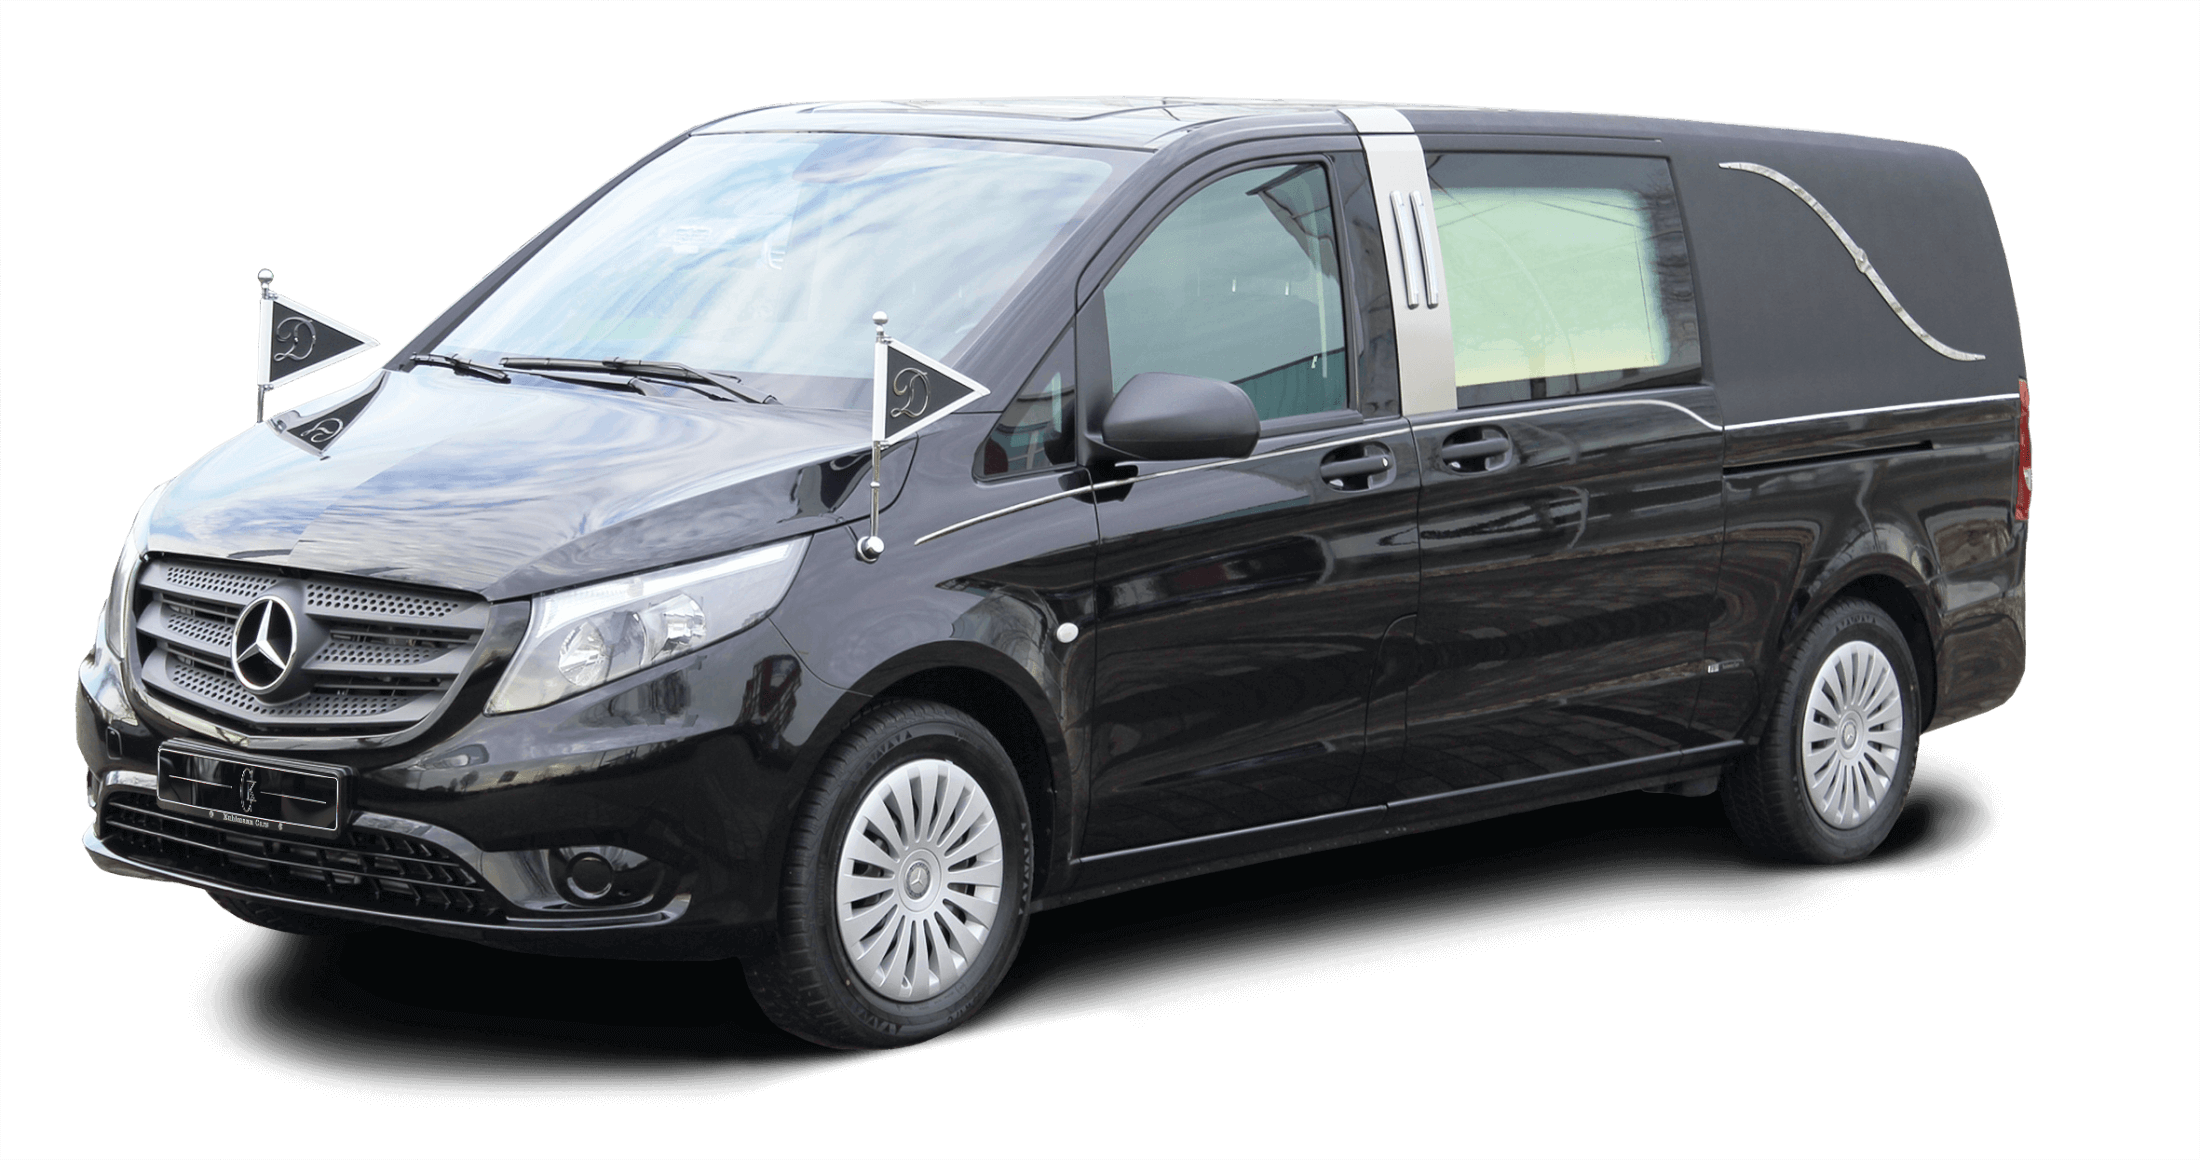 kuhlmann cars new hearse on basis mercedes benz vito v. Black Bedroom Furniture Sets. Home Design Ideas